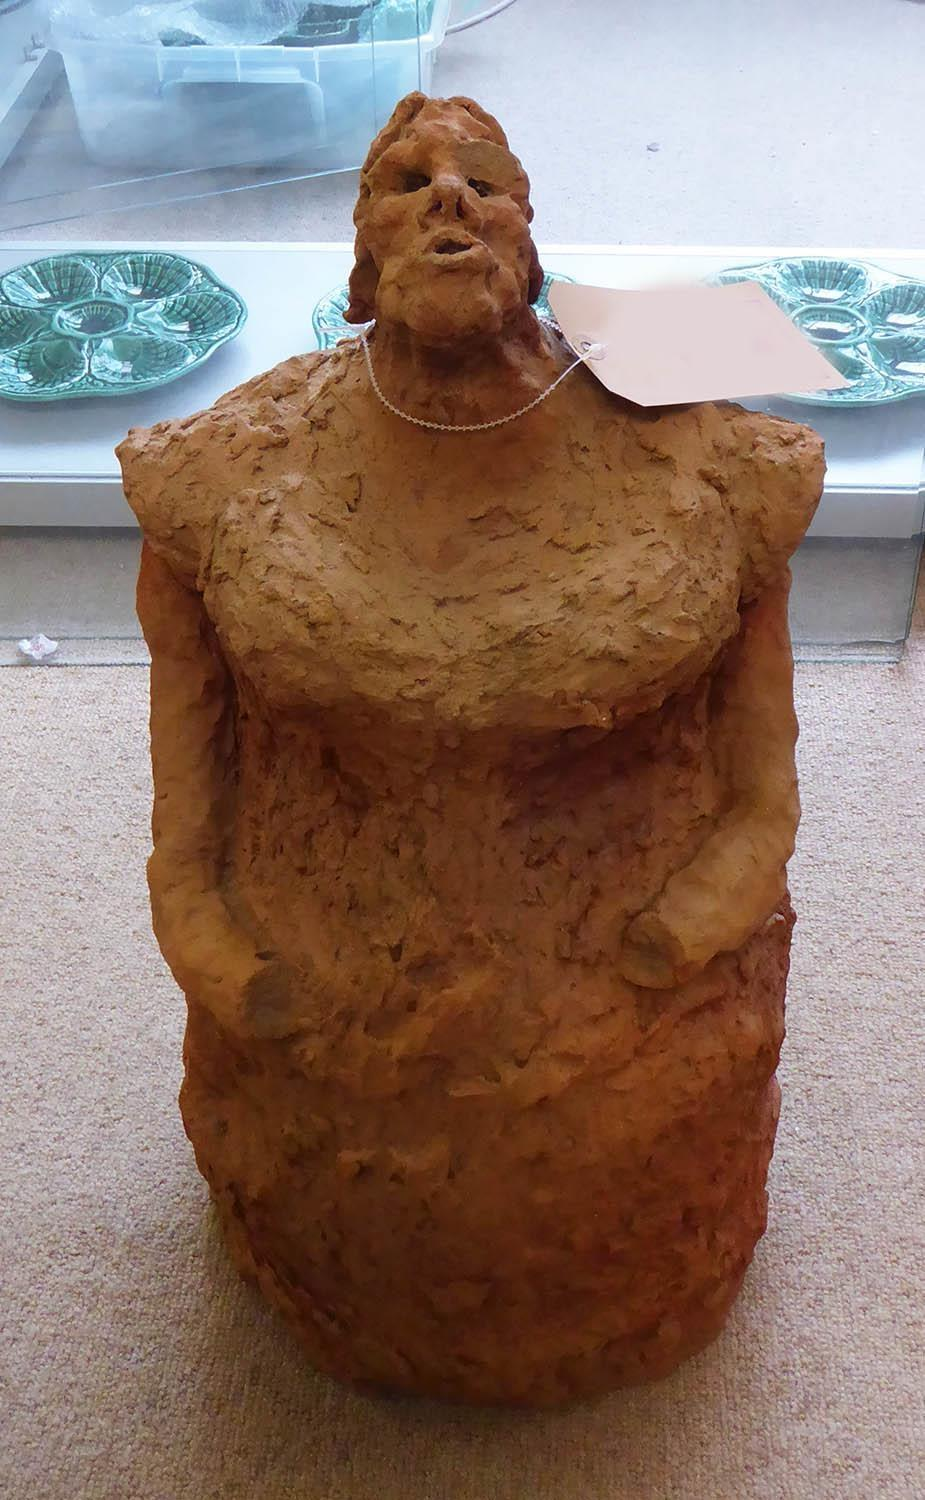 SRI LANKAN SCHOOL 'Female Figure', garden terracotta sculpture, 54cm x 24cm x 24cm.